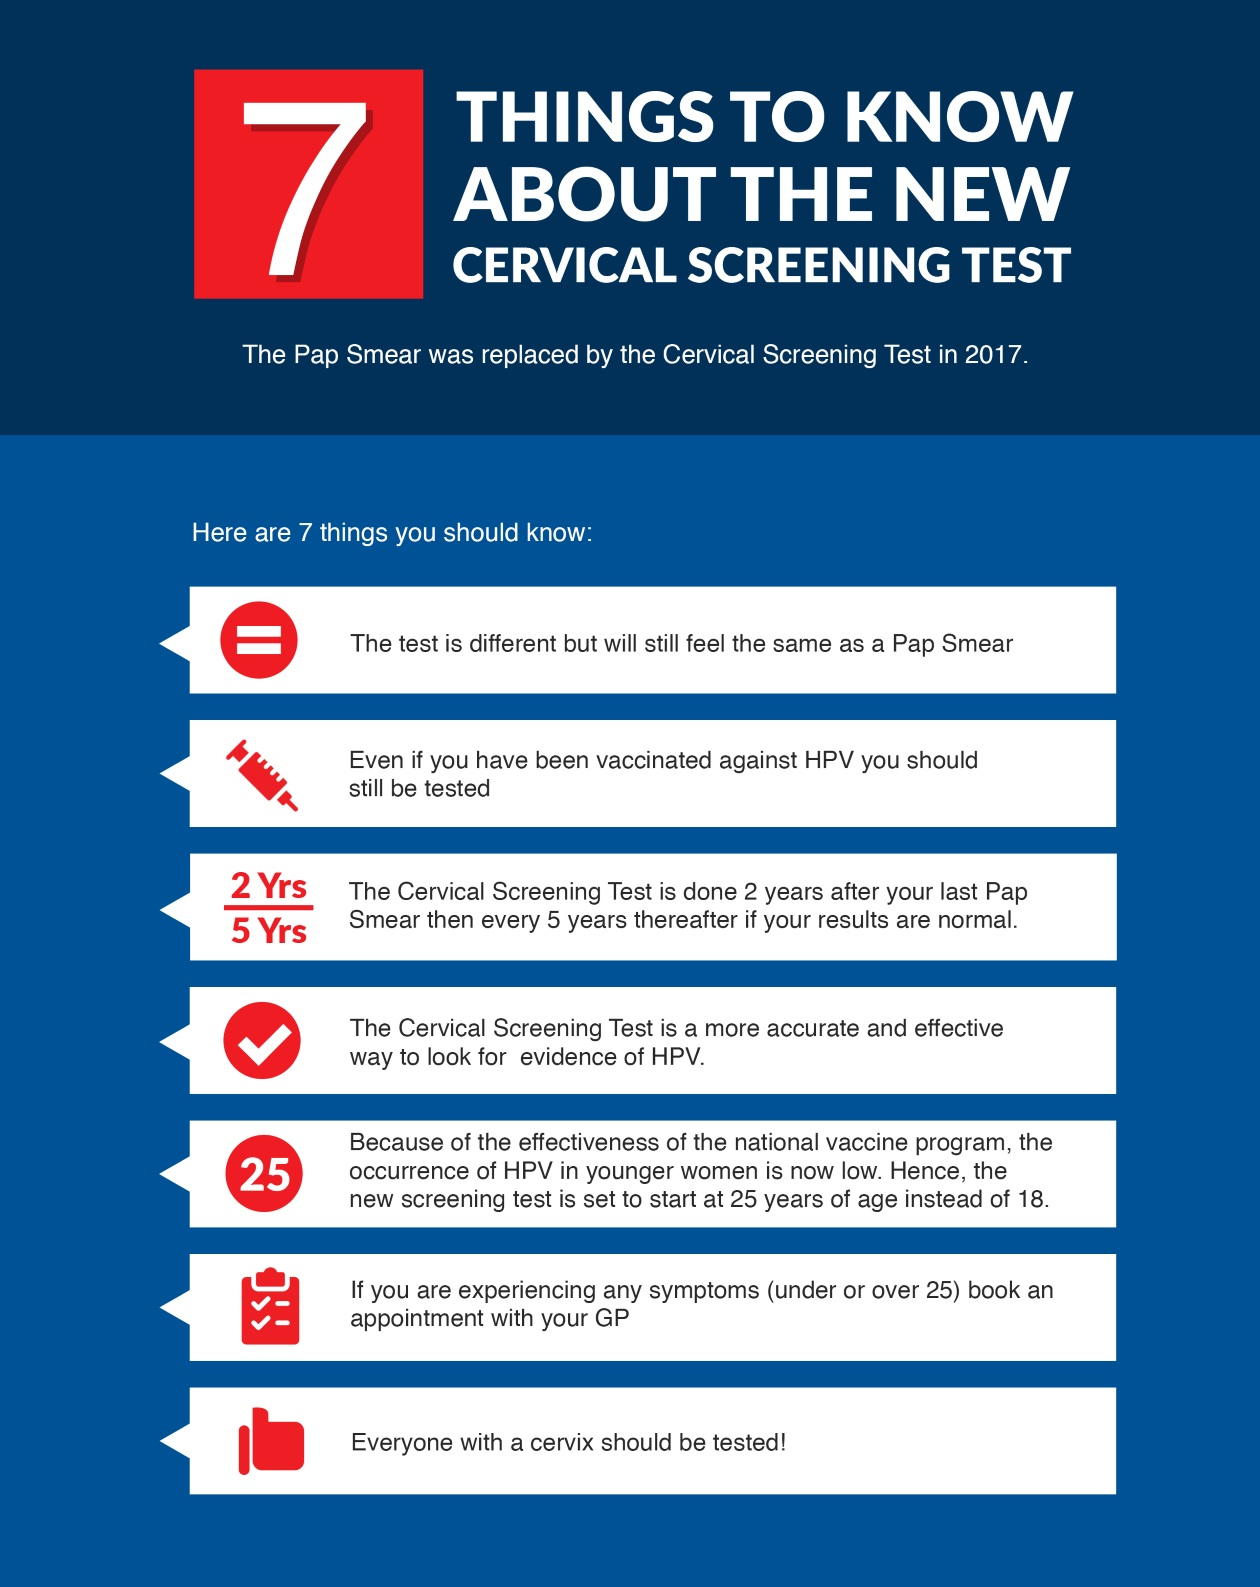 Infographic- 7 Things to know about the new Cervical Screening Test